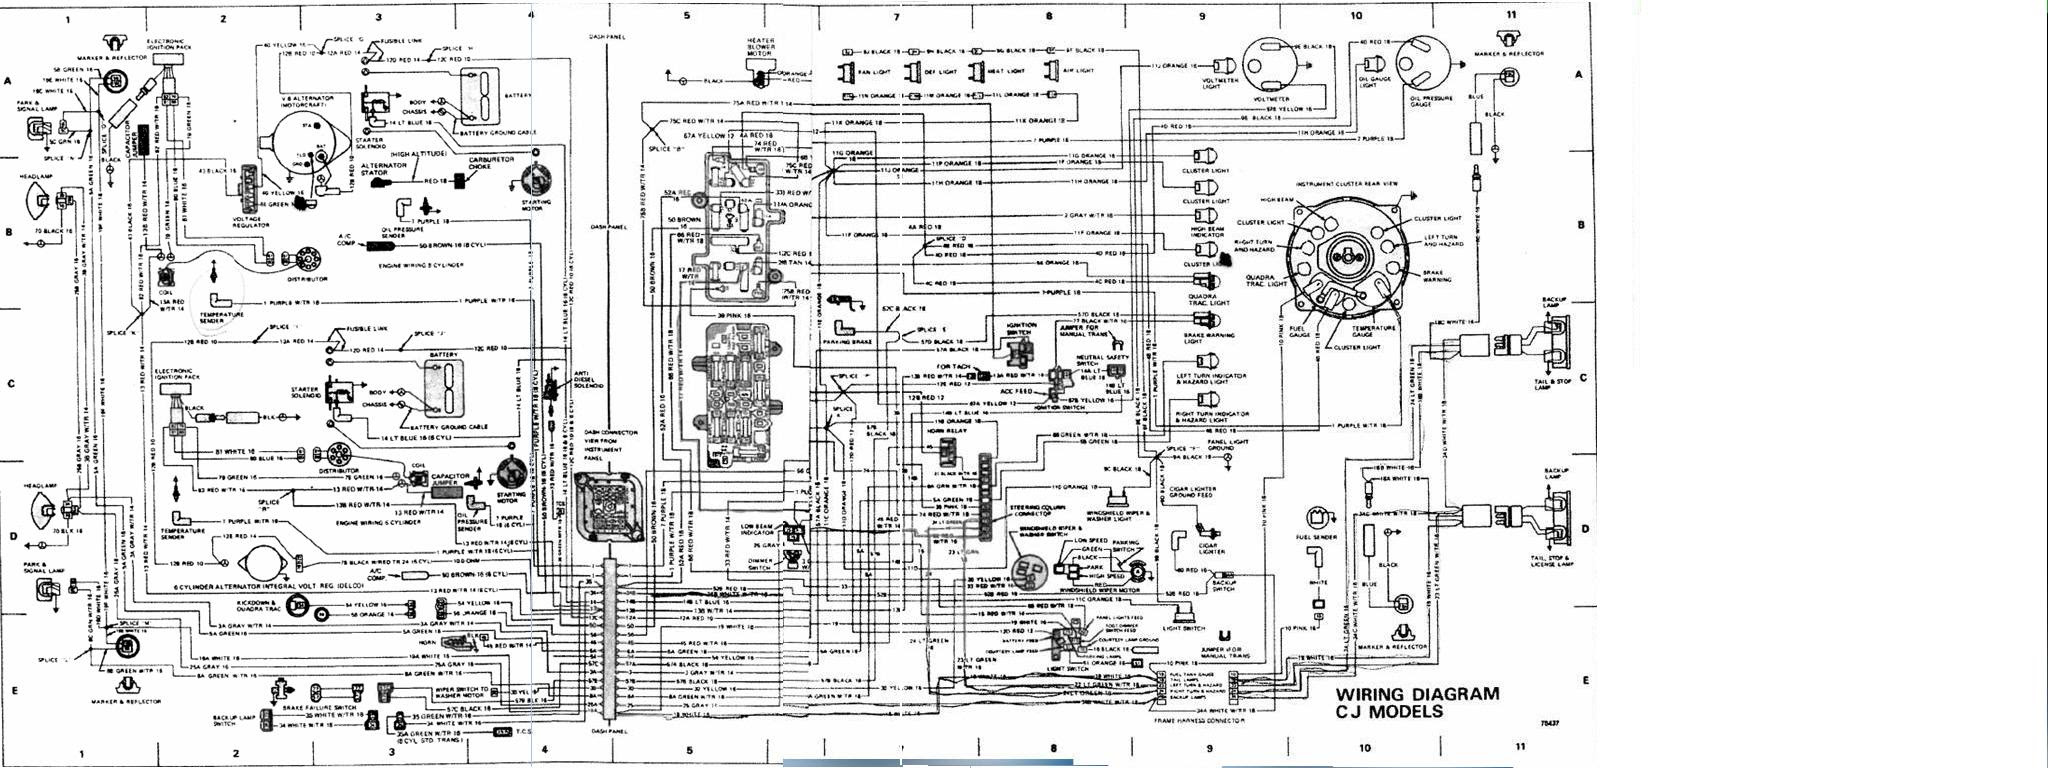 1979 Jeep Cj5 Wiring Diagram from lh5.googleusercontent.com